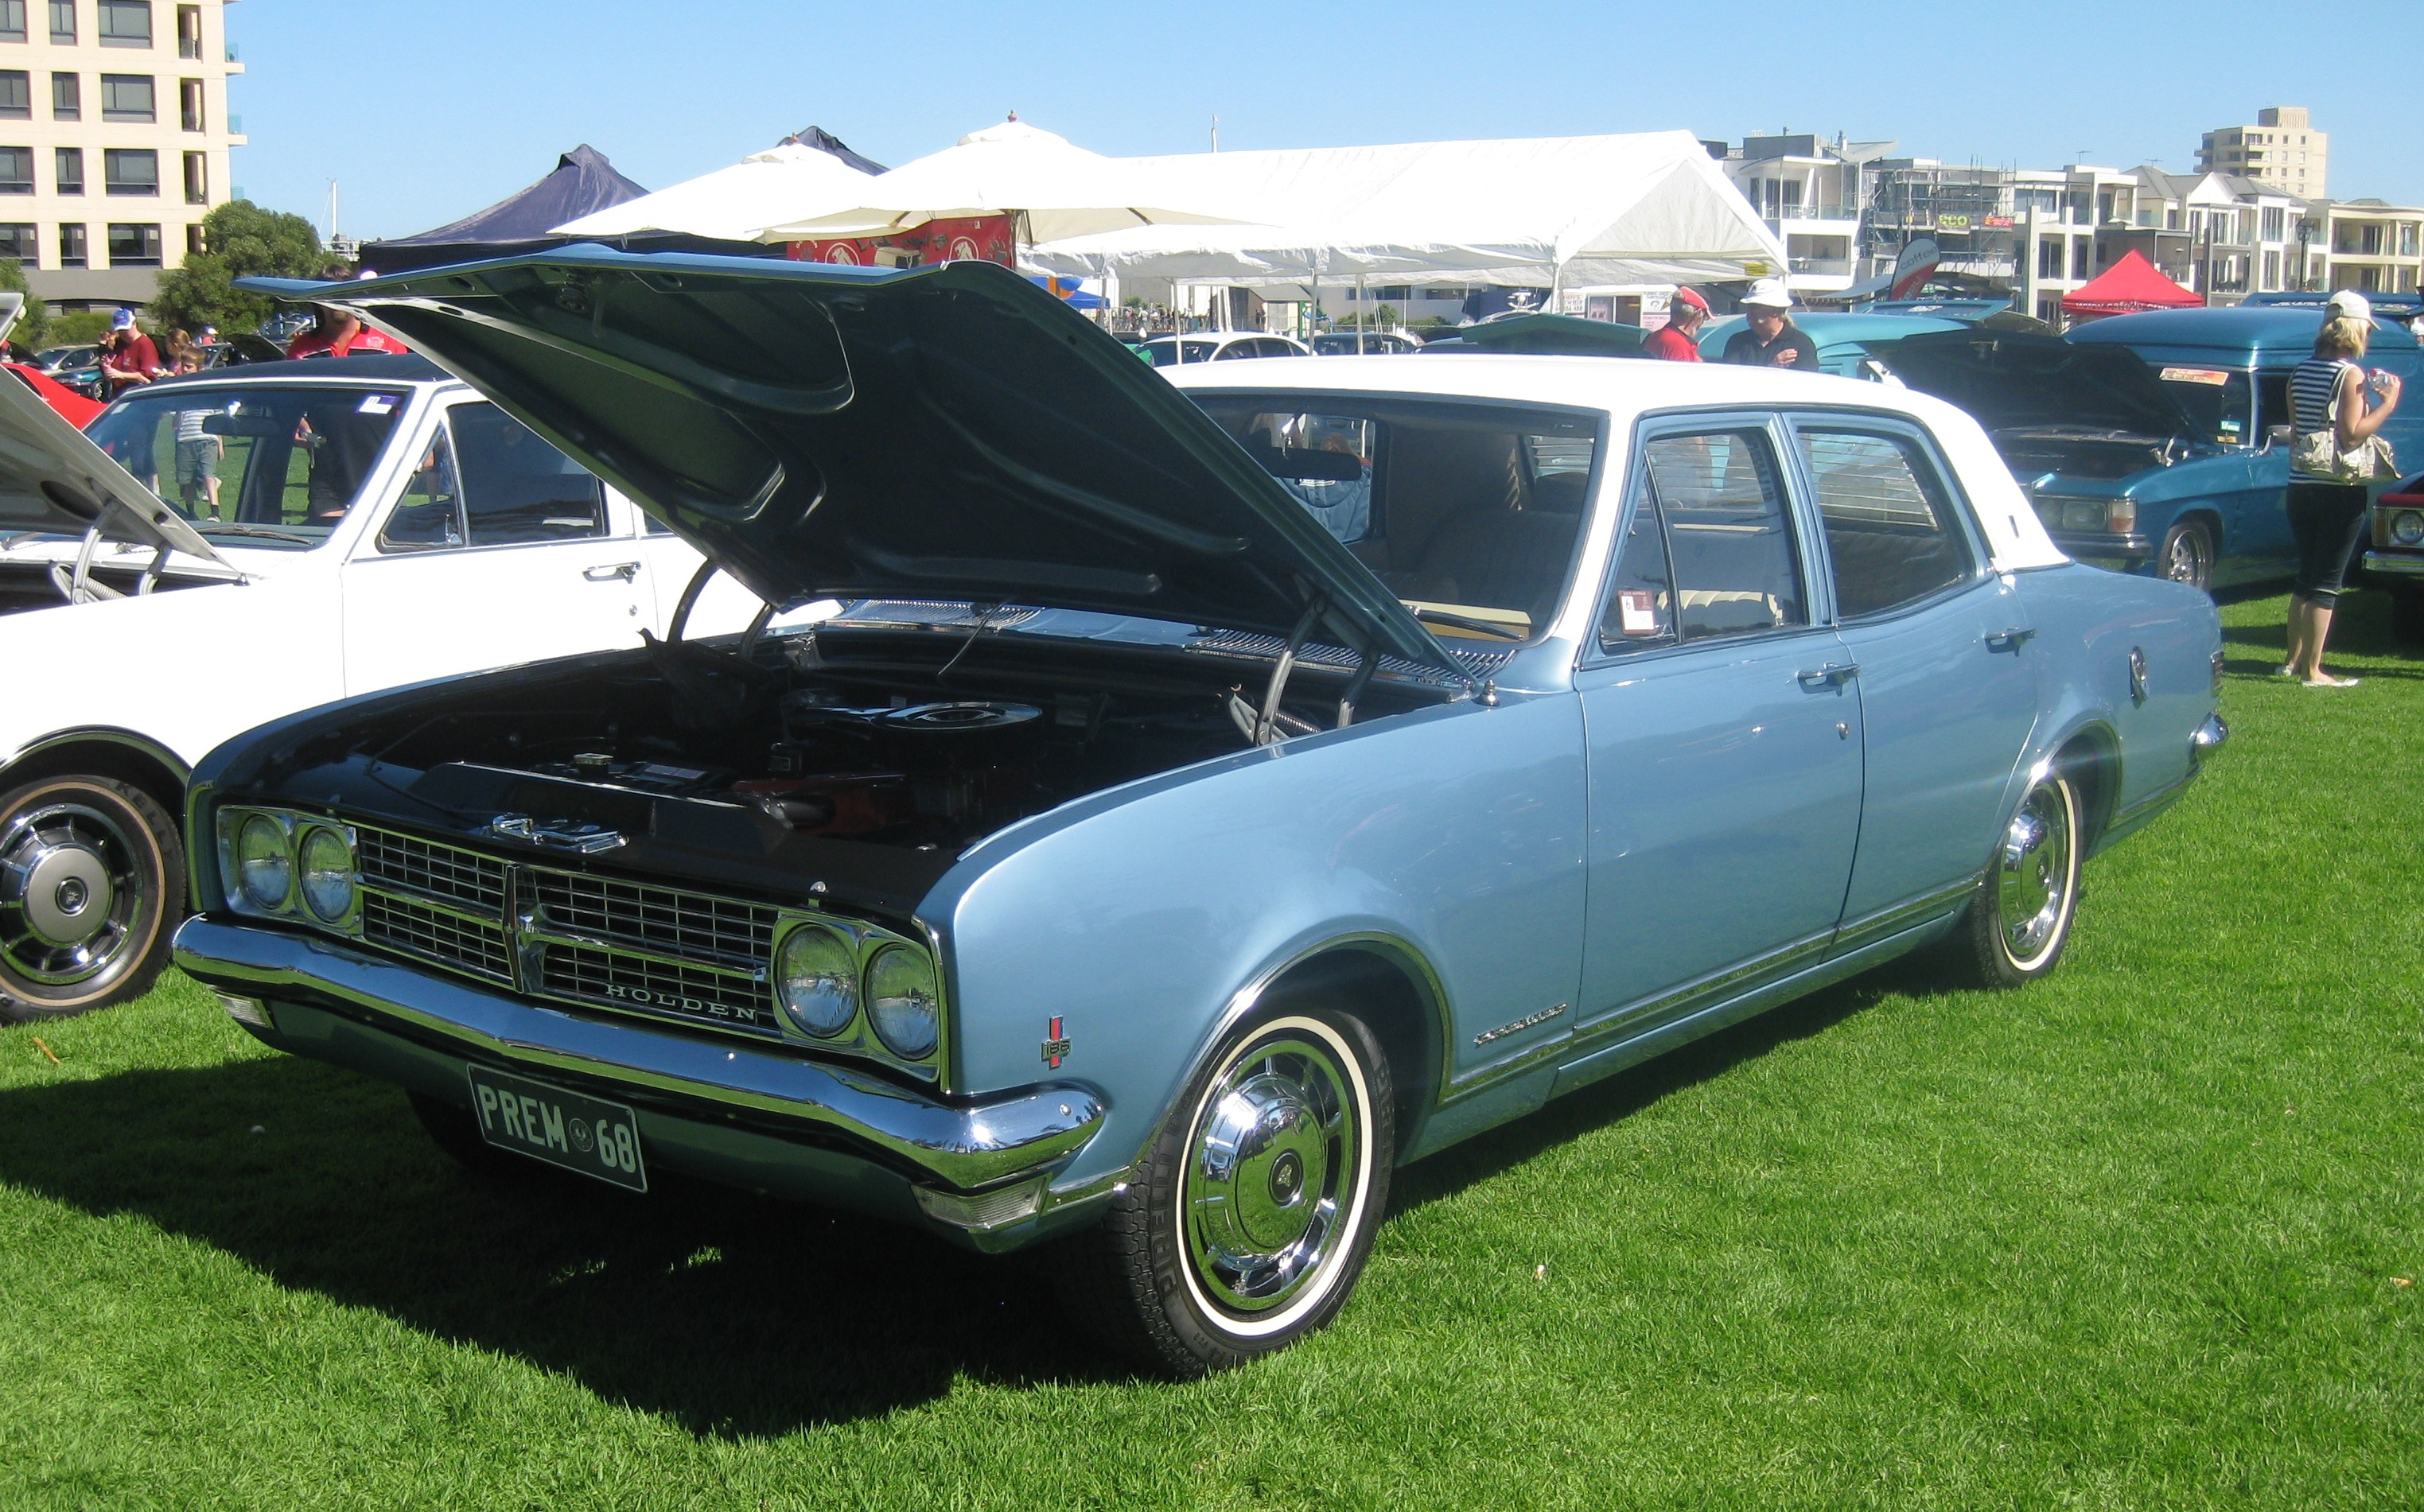 Holden premier photo - 3